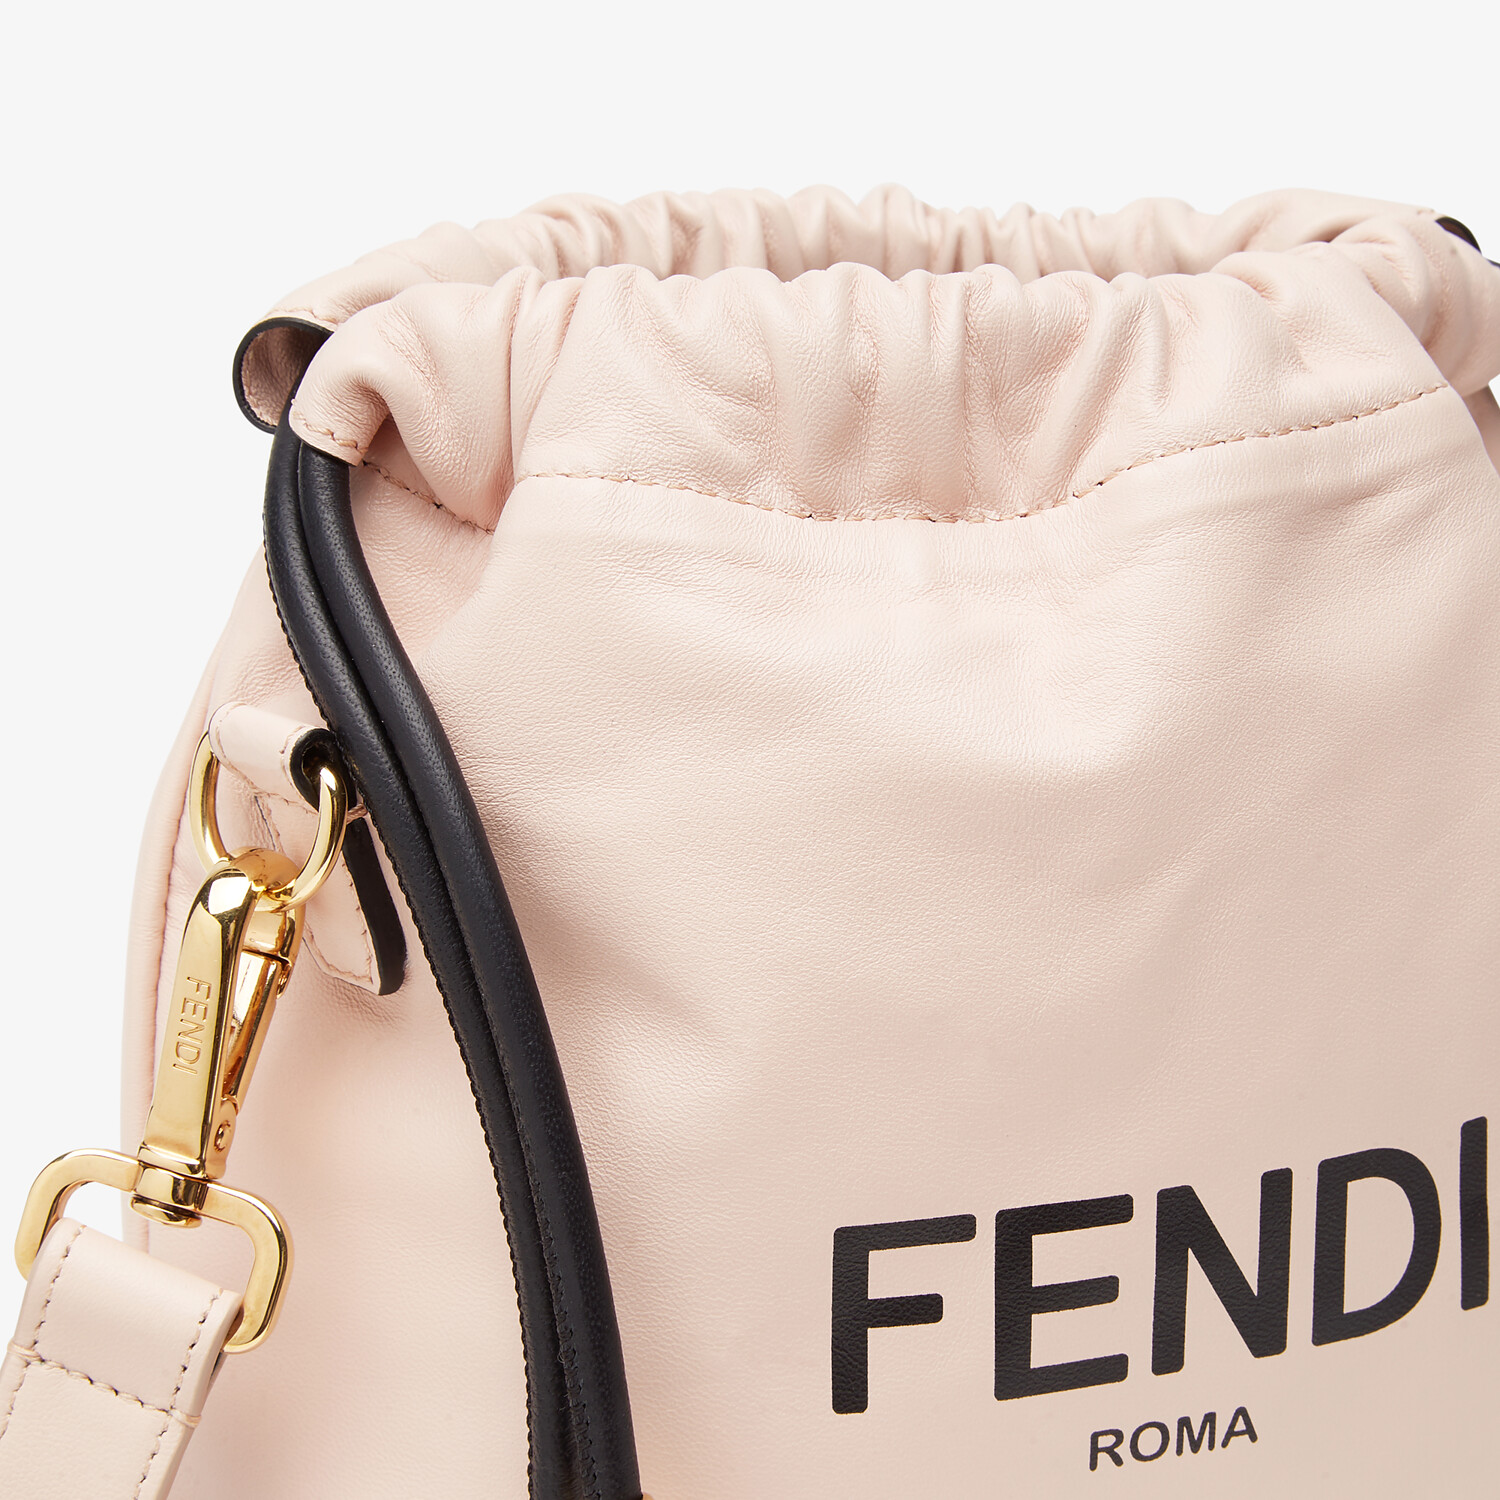 FENDI FENDI PACK SMALL POUCH - Pink nappa leather bag - view 6 detail